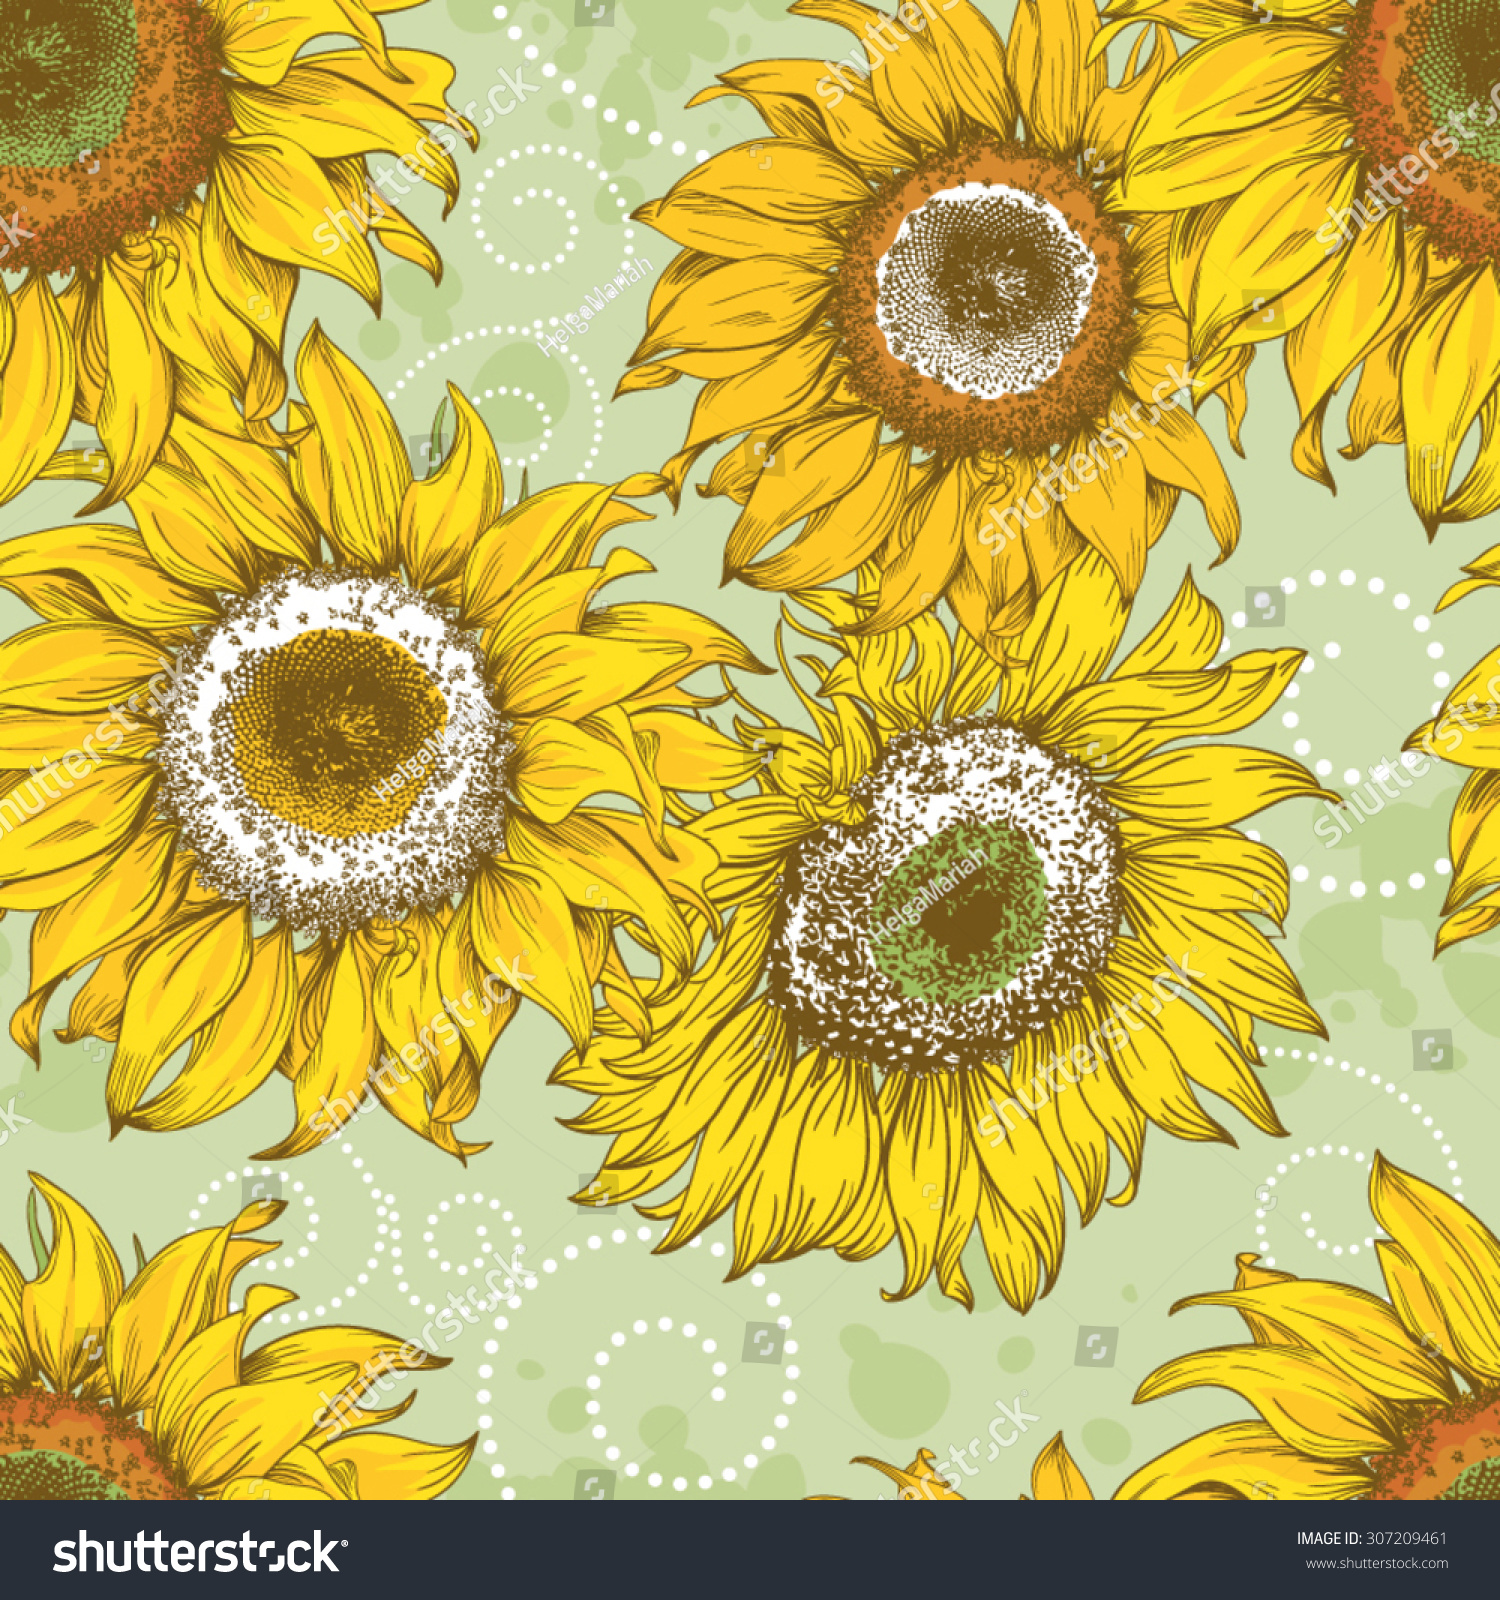 Seamless Wallpaper Background With Hand Drawn Vintage Sunflowers Curls And Splashes